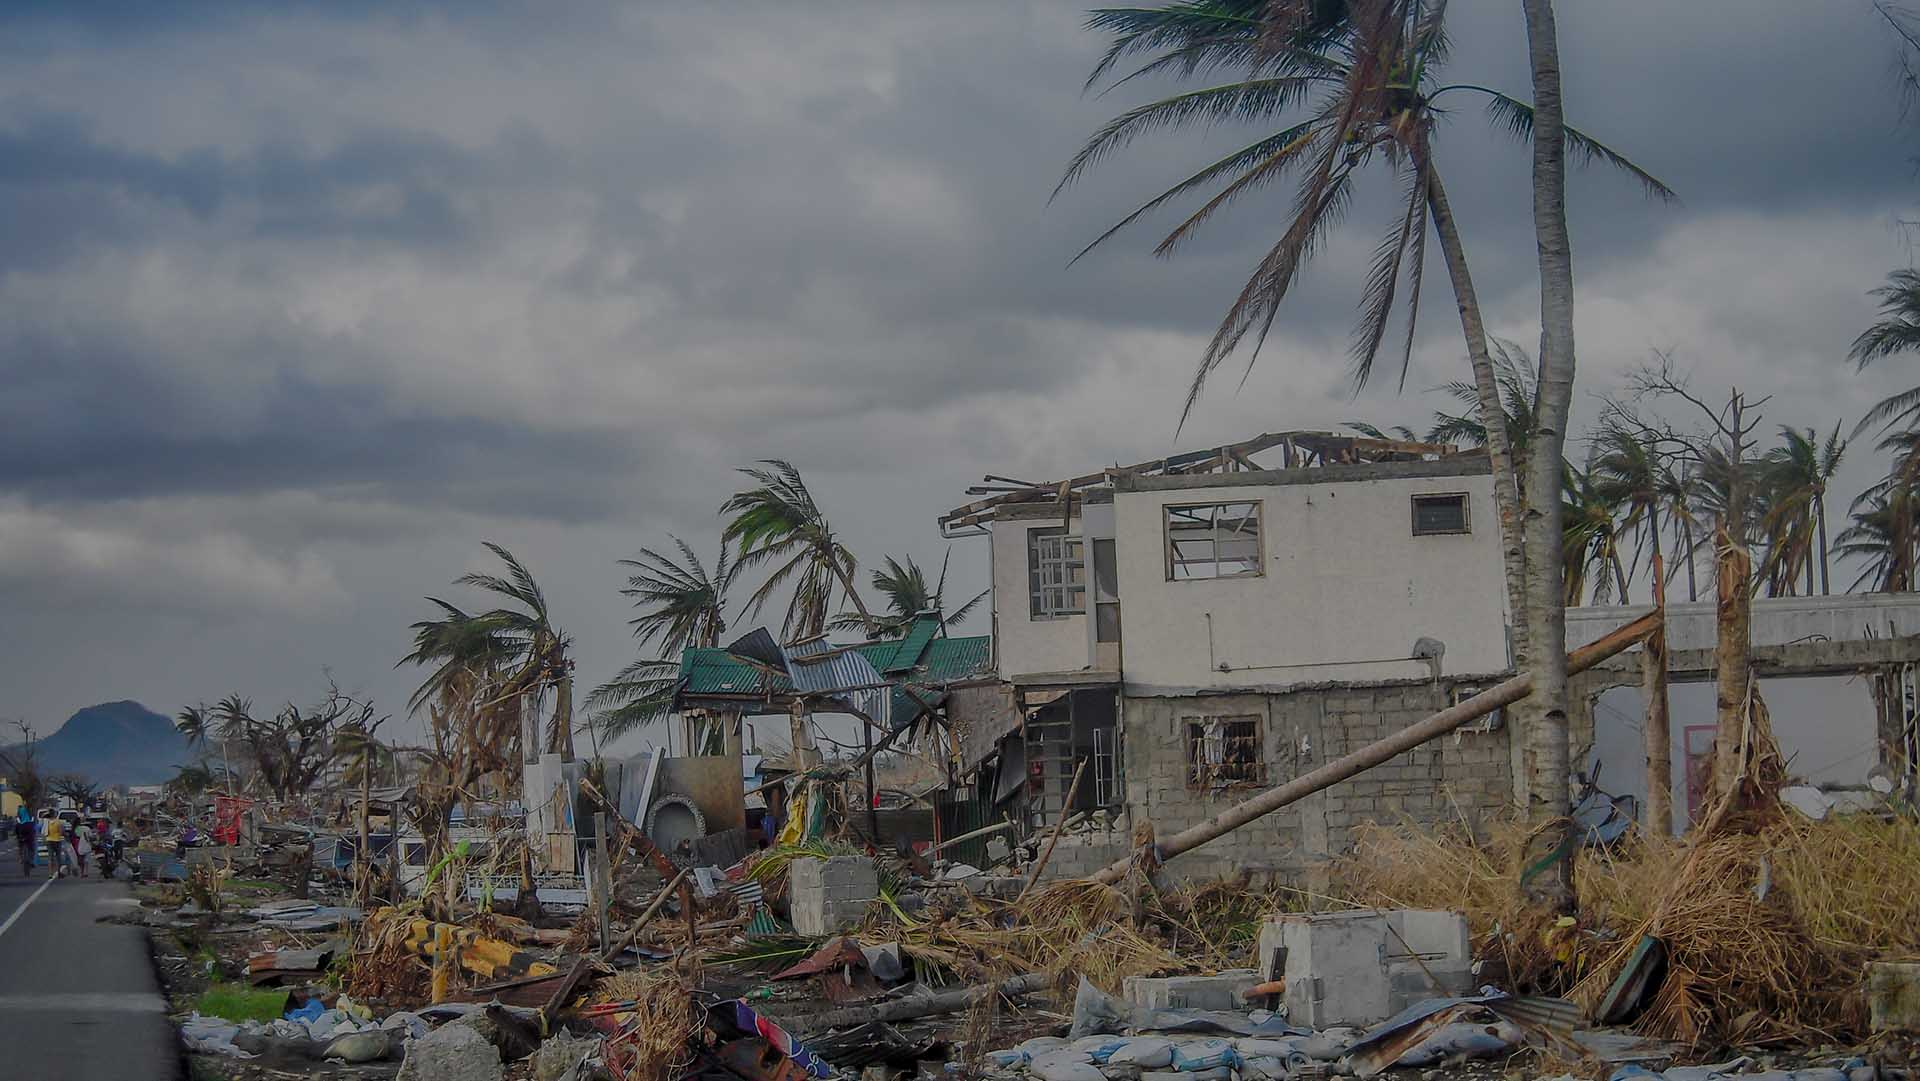 The Most Active Hurricane Season On Record